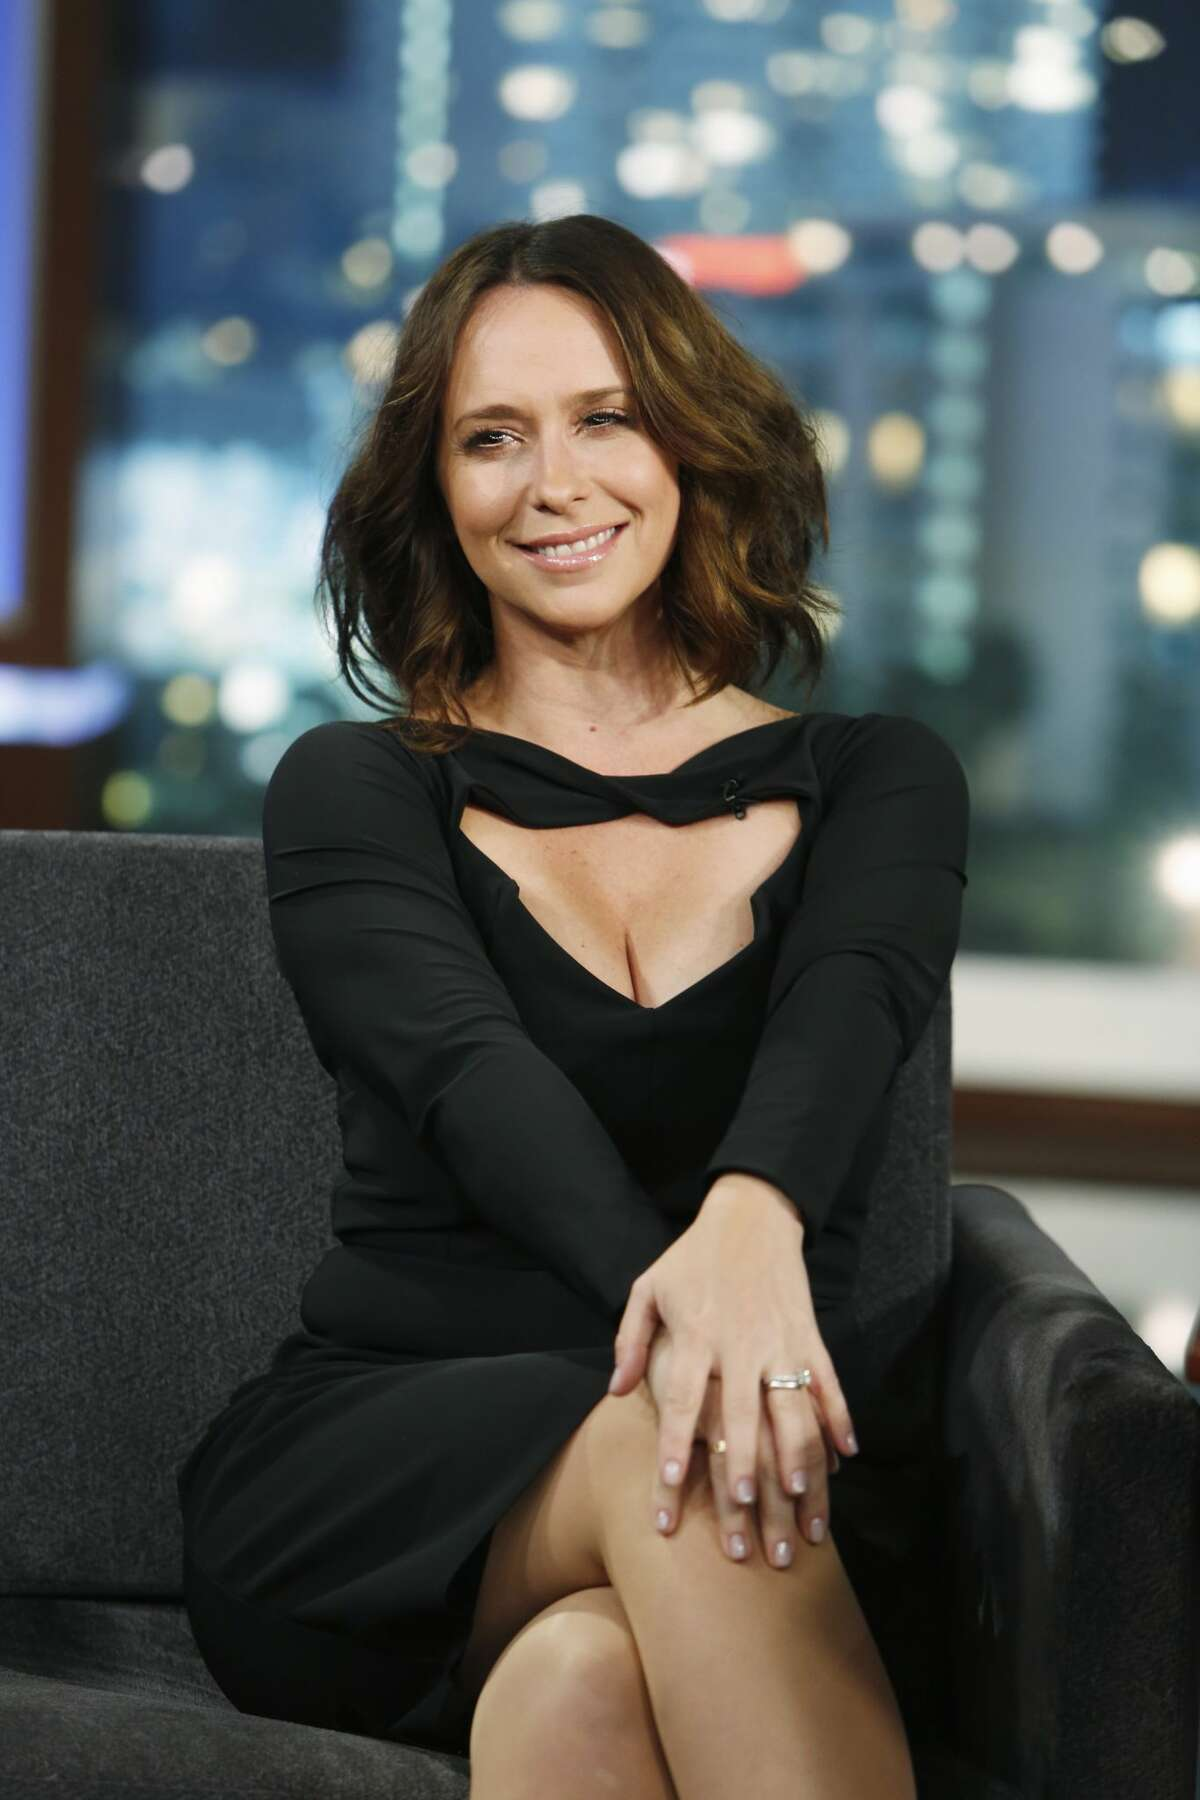 Here is actress Jennifer Love Hewitt today.